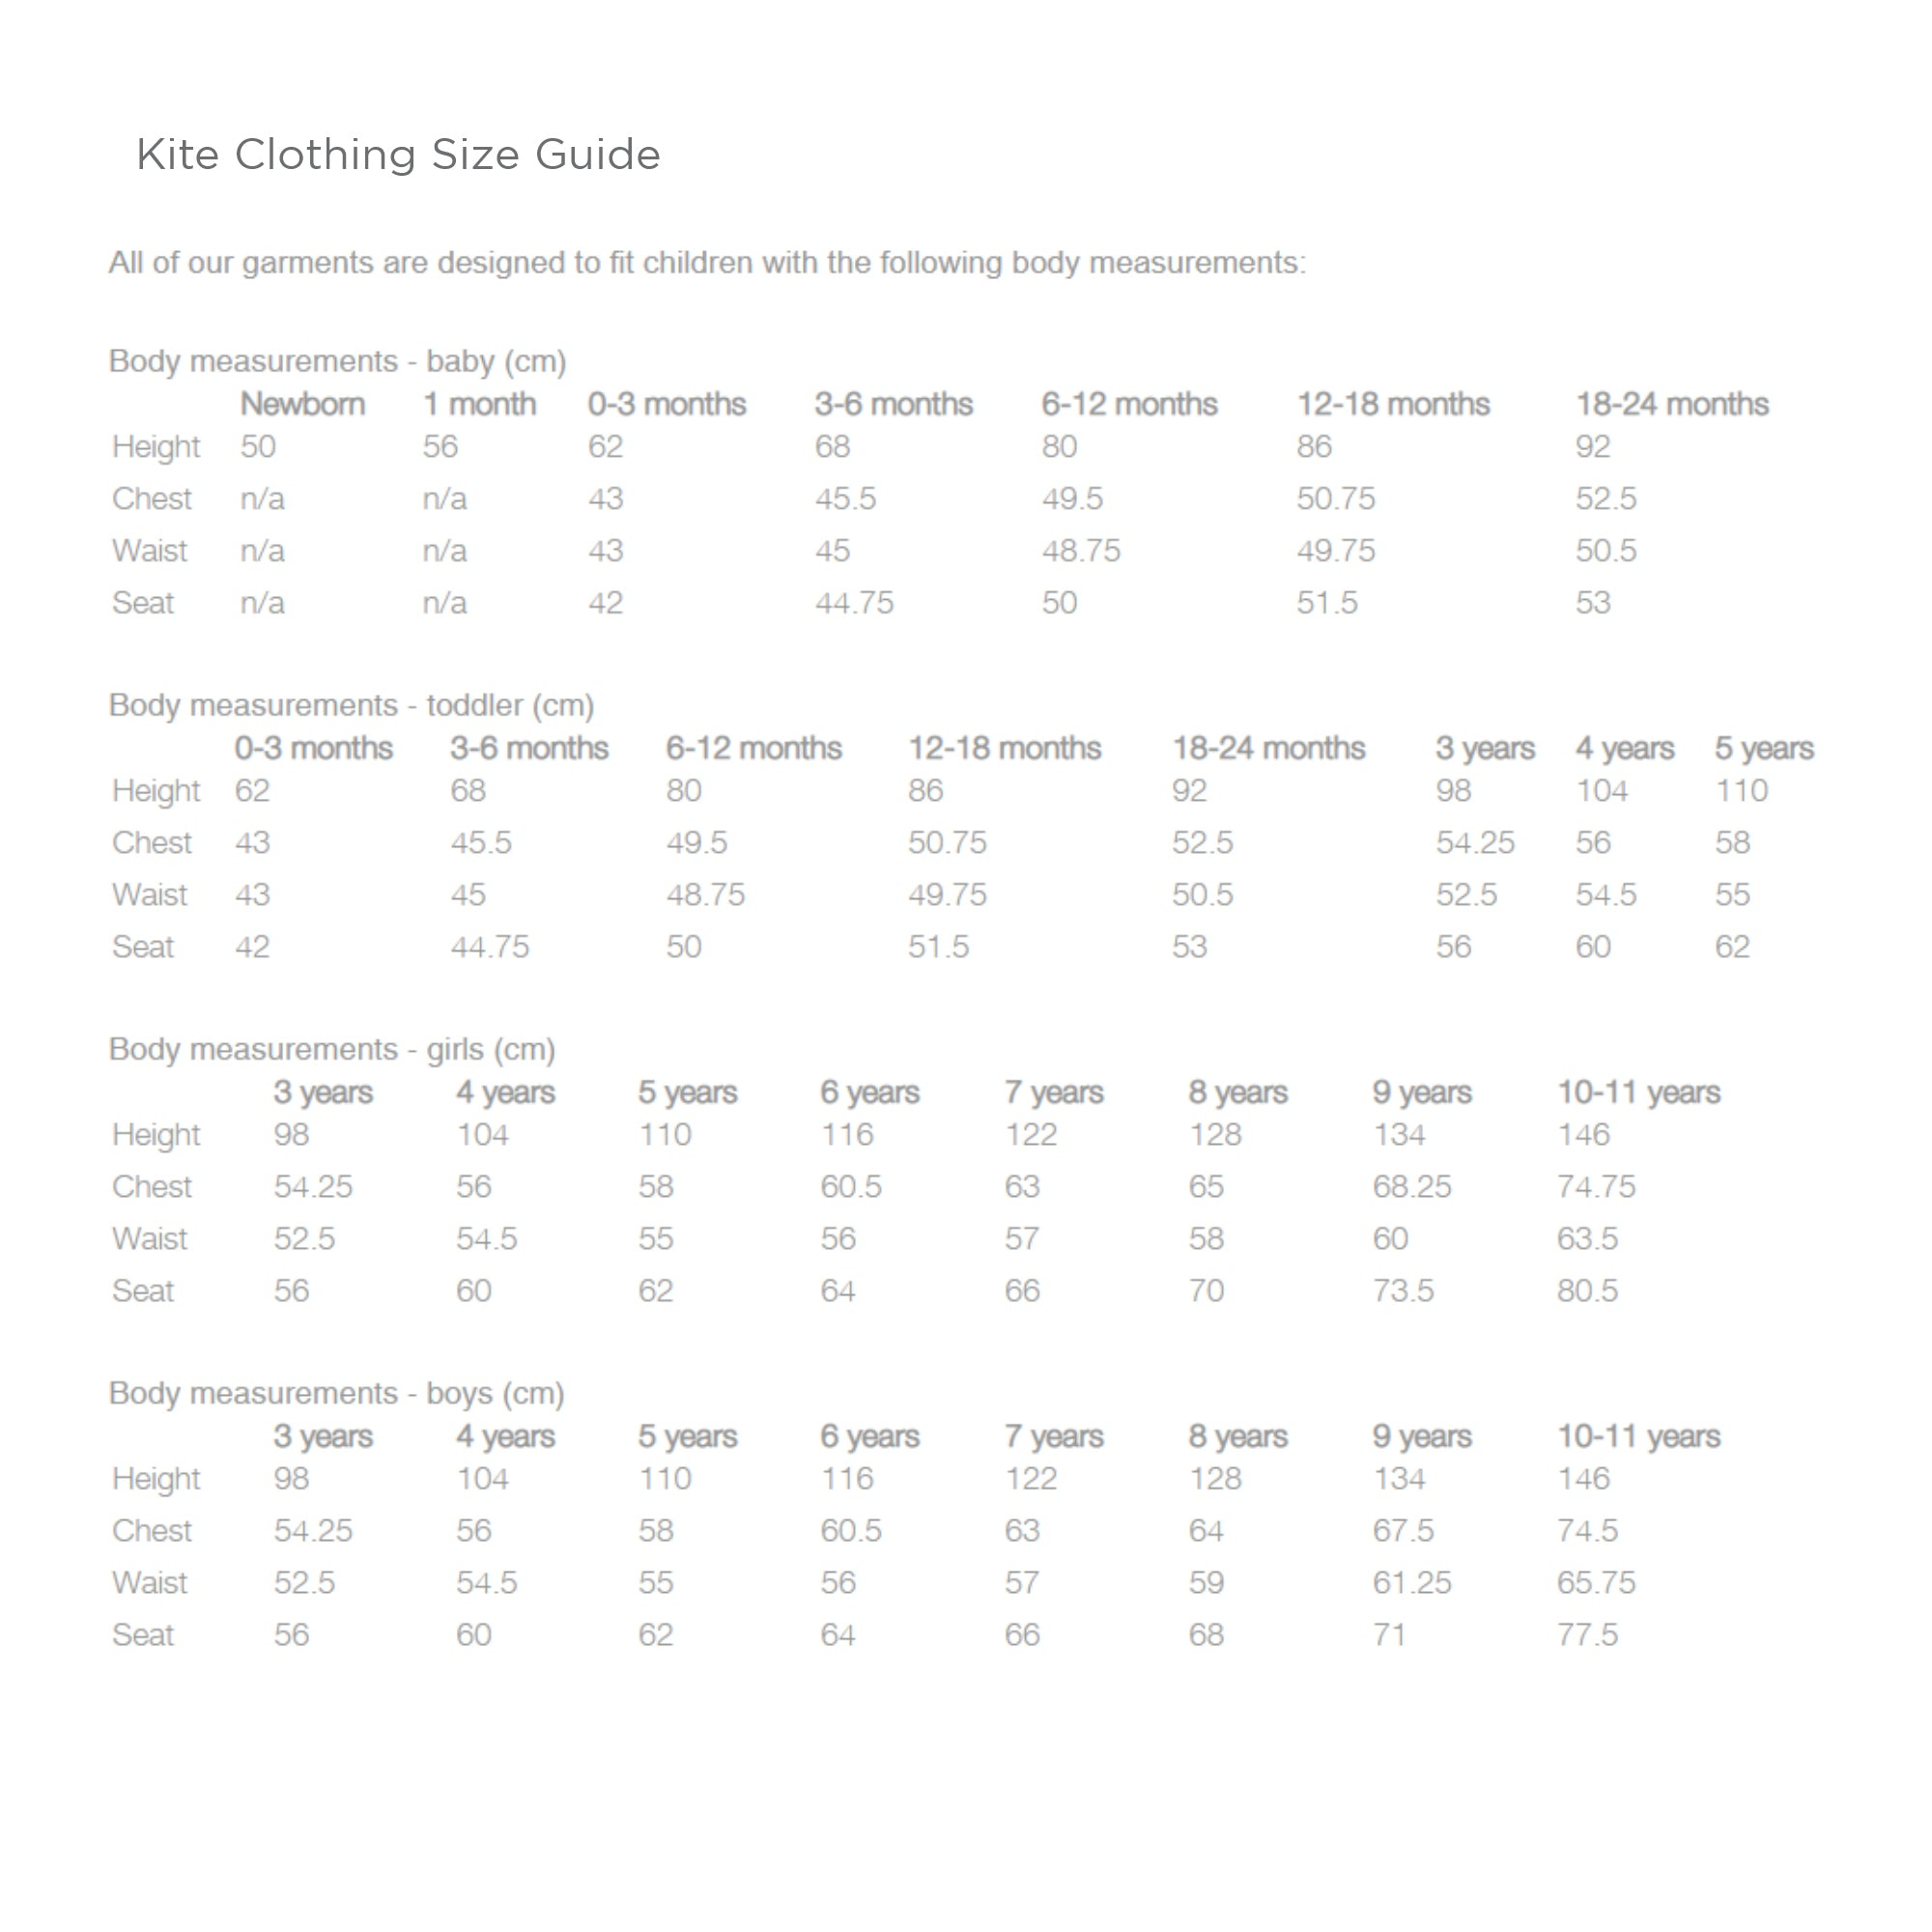 Kite Clothing Size Guide